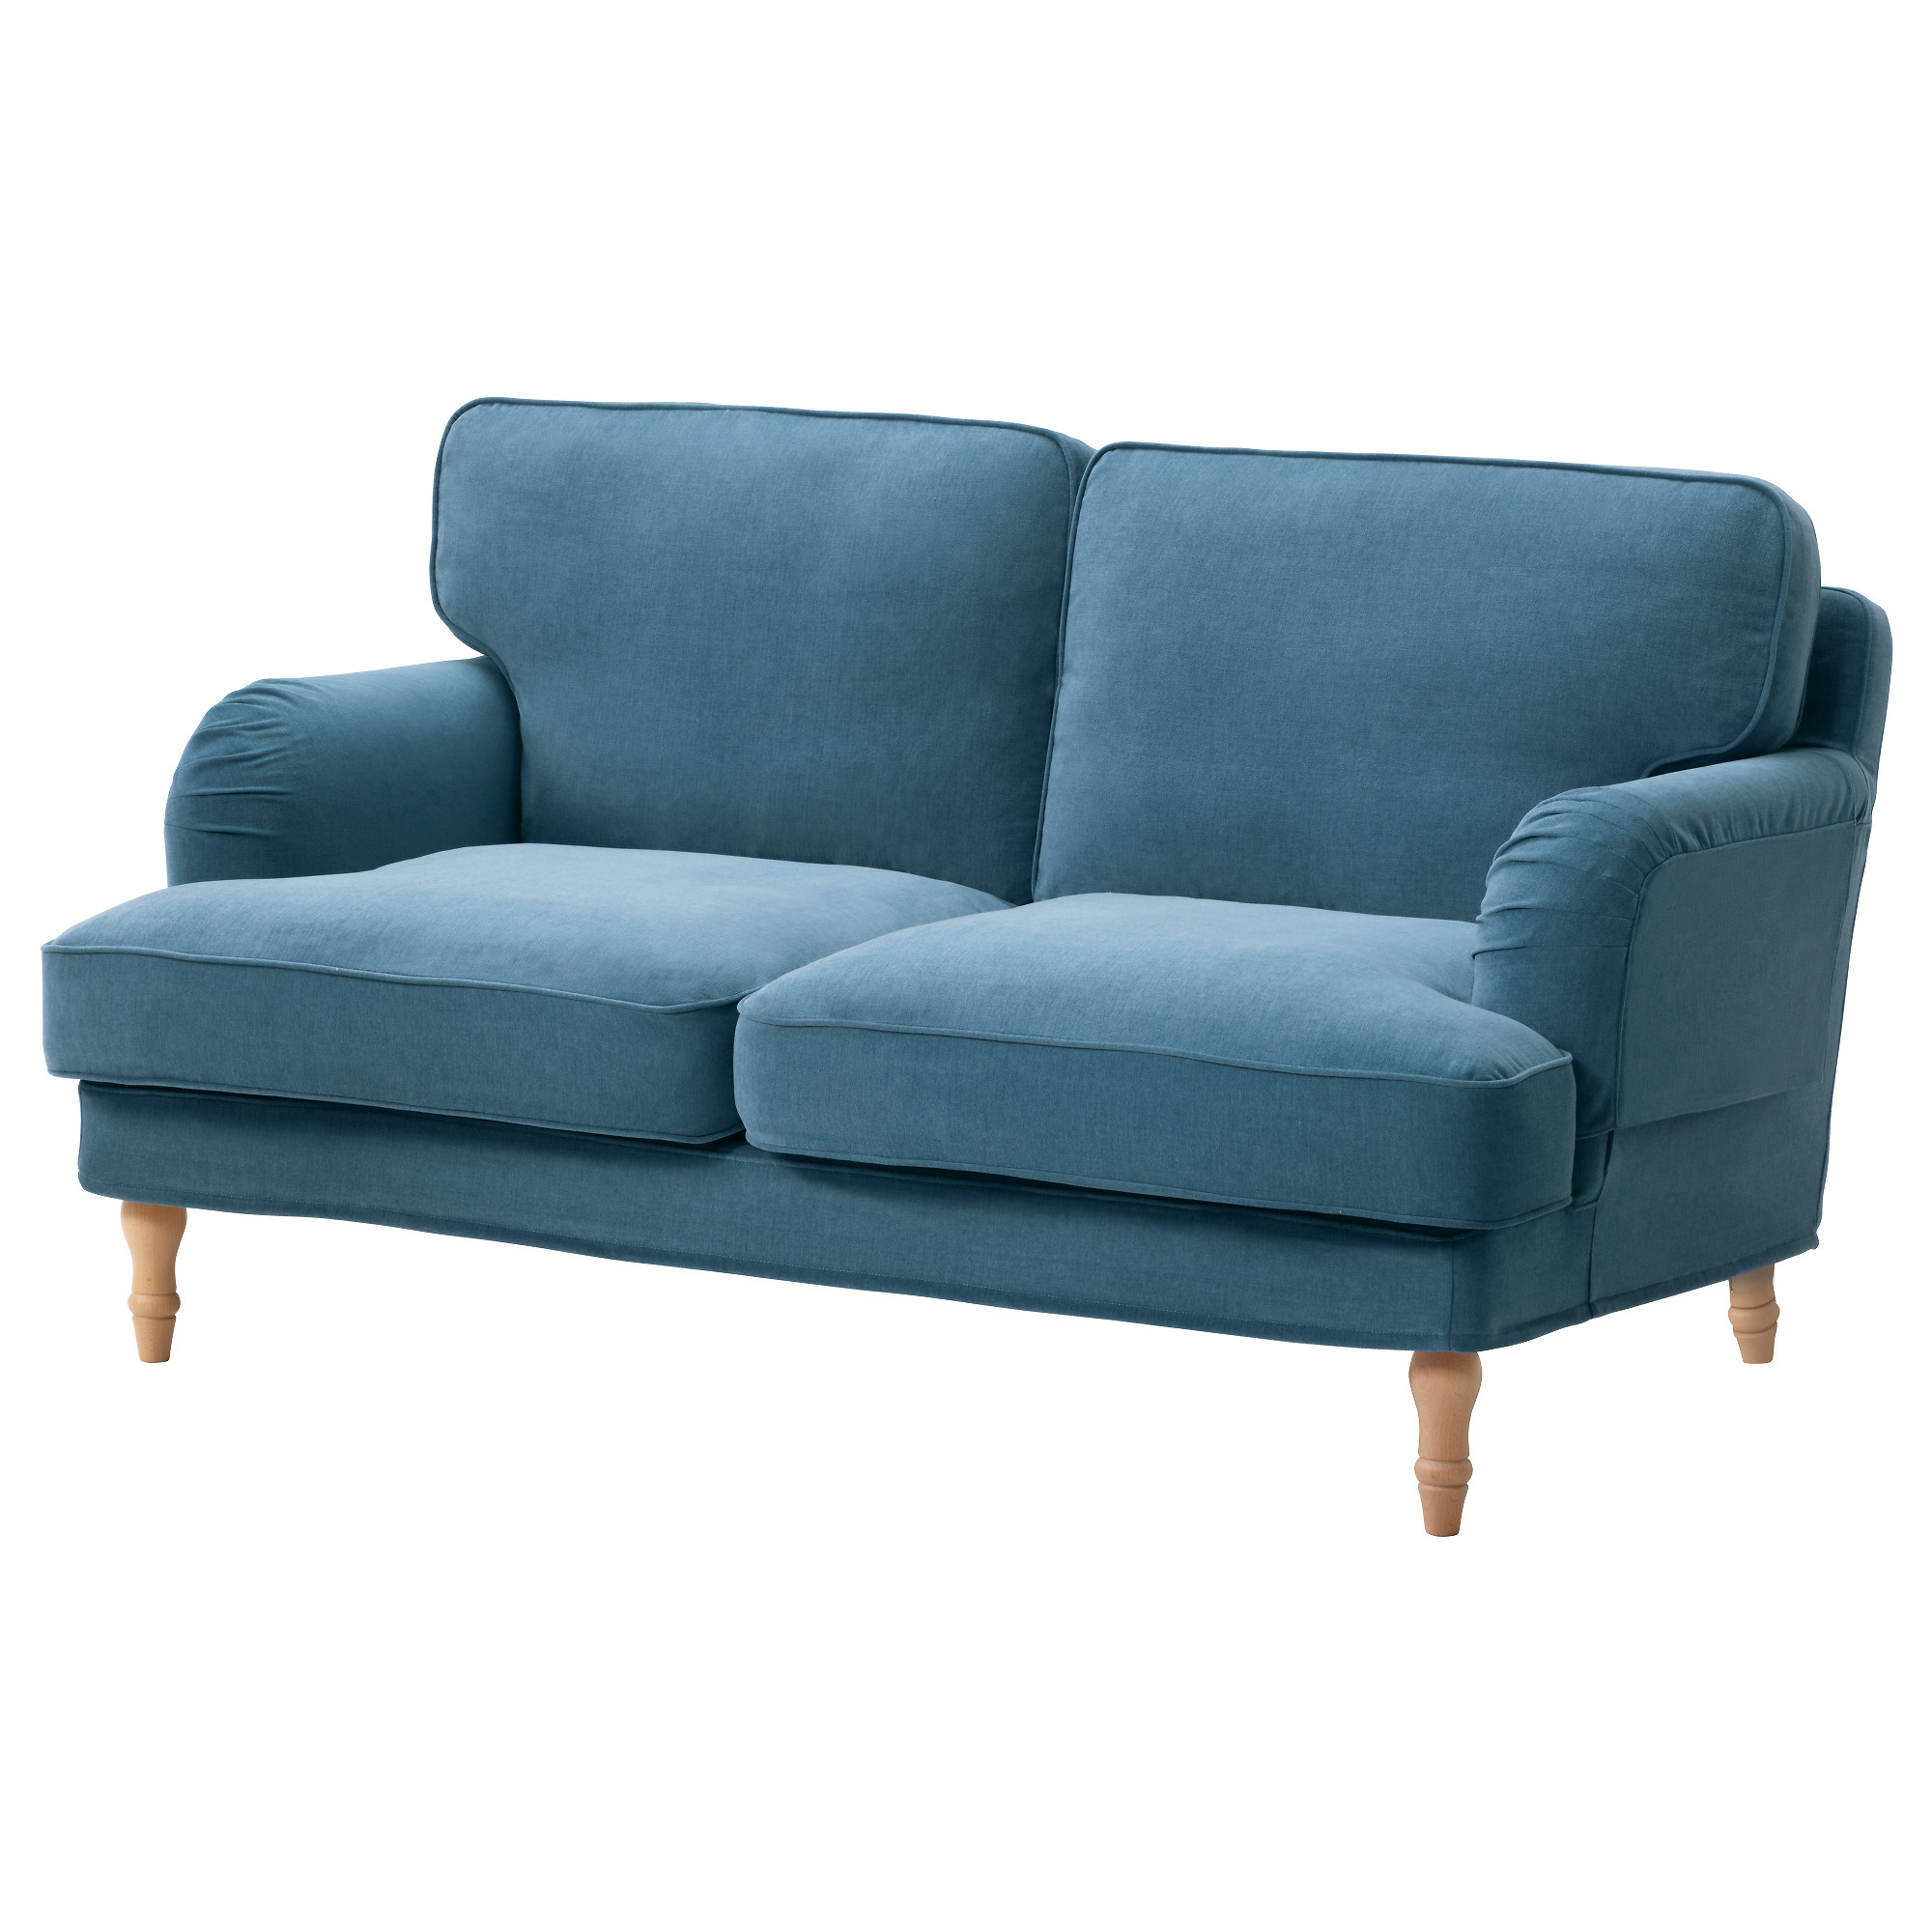 STOCKSUND Loveseat cover Ljungen blue IKEA